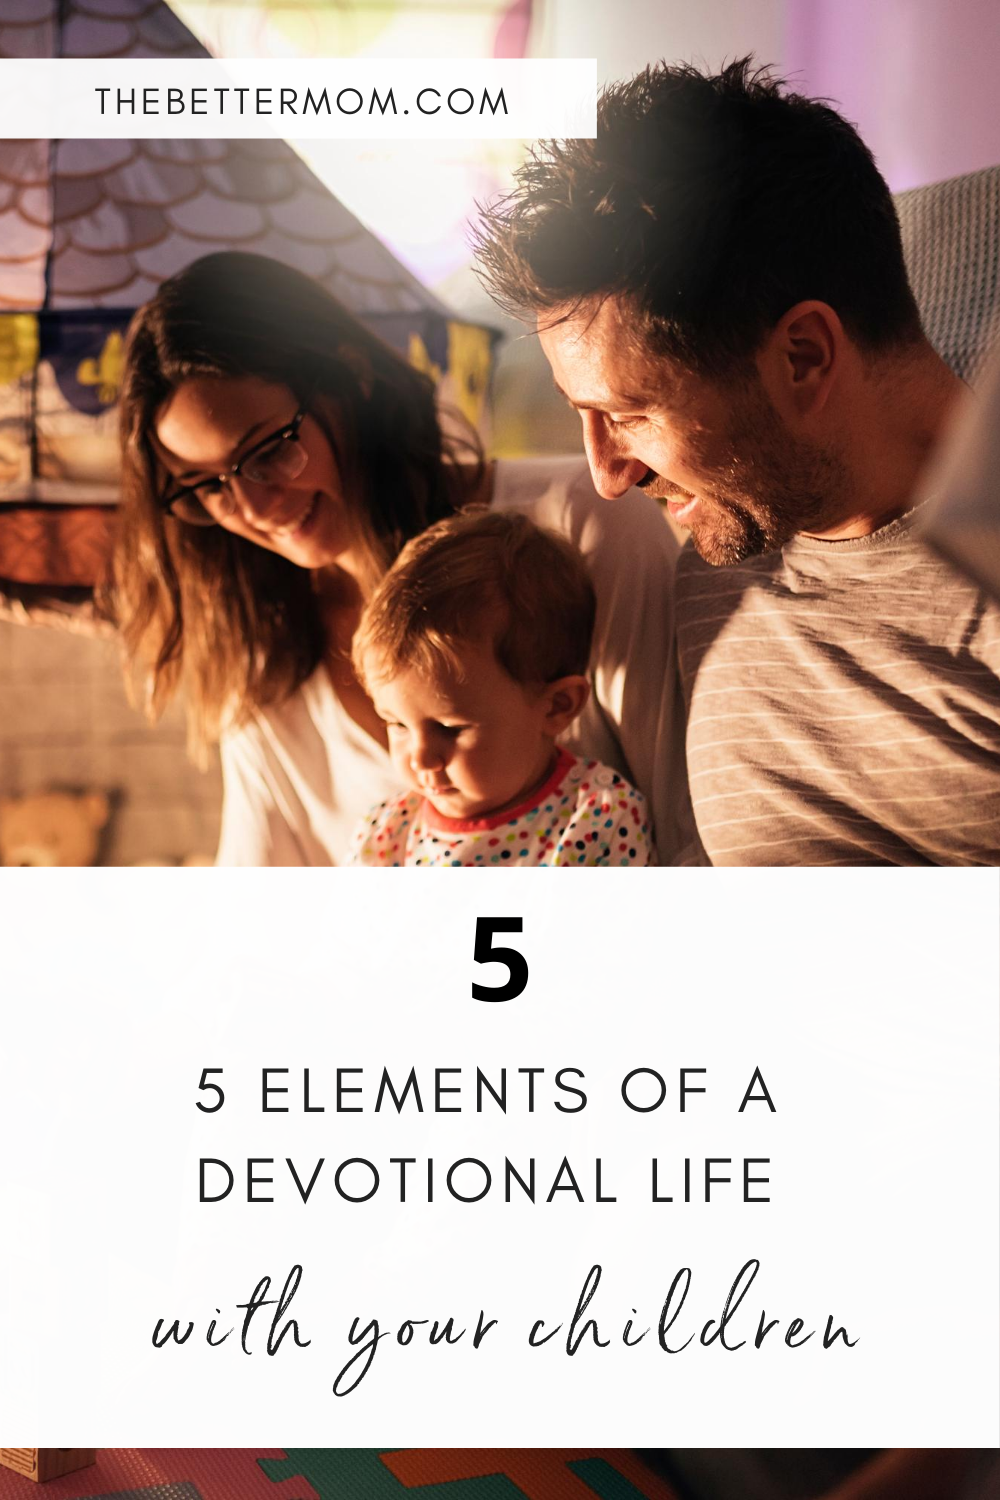 Devotion is not merely the acts but is found in your dedication to the Lord. Showing your children what it means to live a life of devotion is so important and it starts with living a devotional life ourselves!